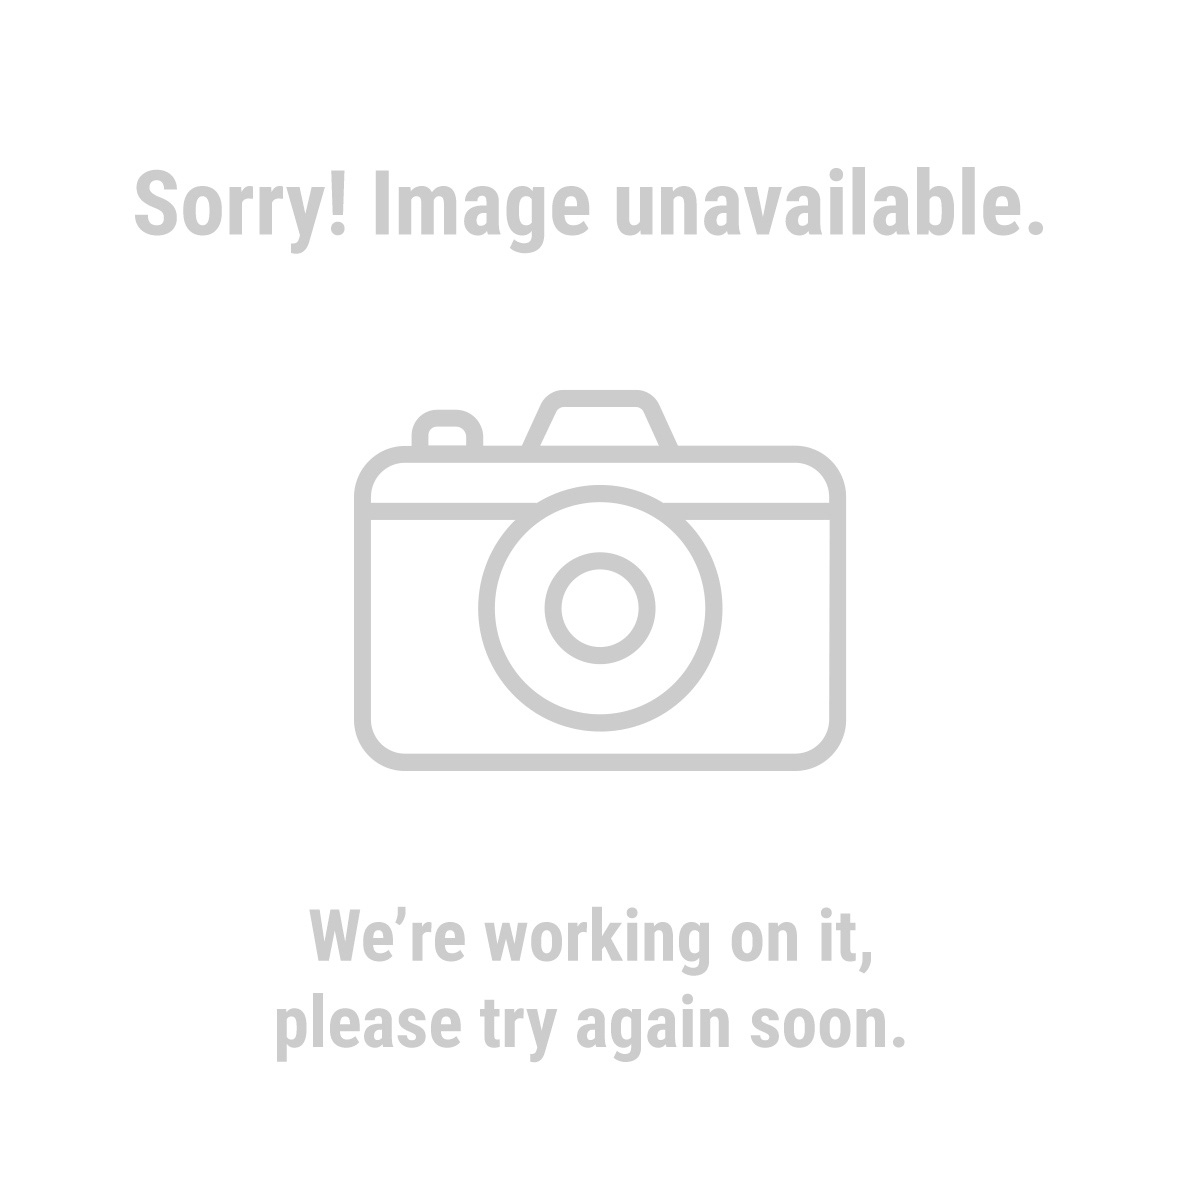 Admiral 62718 10 in., 40T General Purpose Circular Saw Blade with Nitro Shield™ Coating